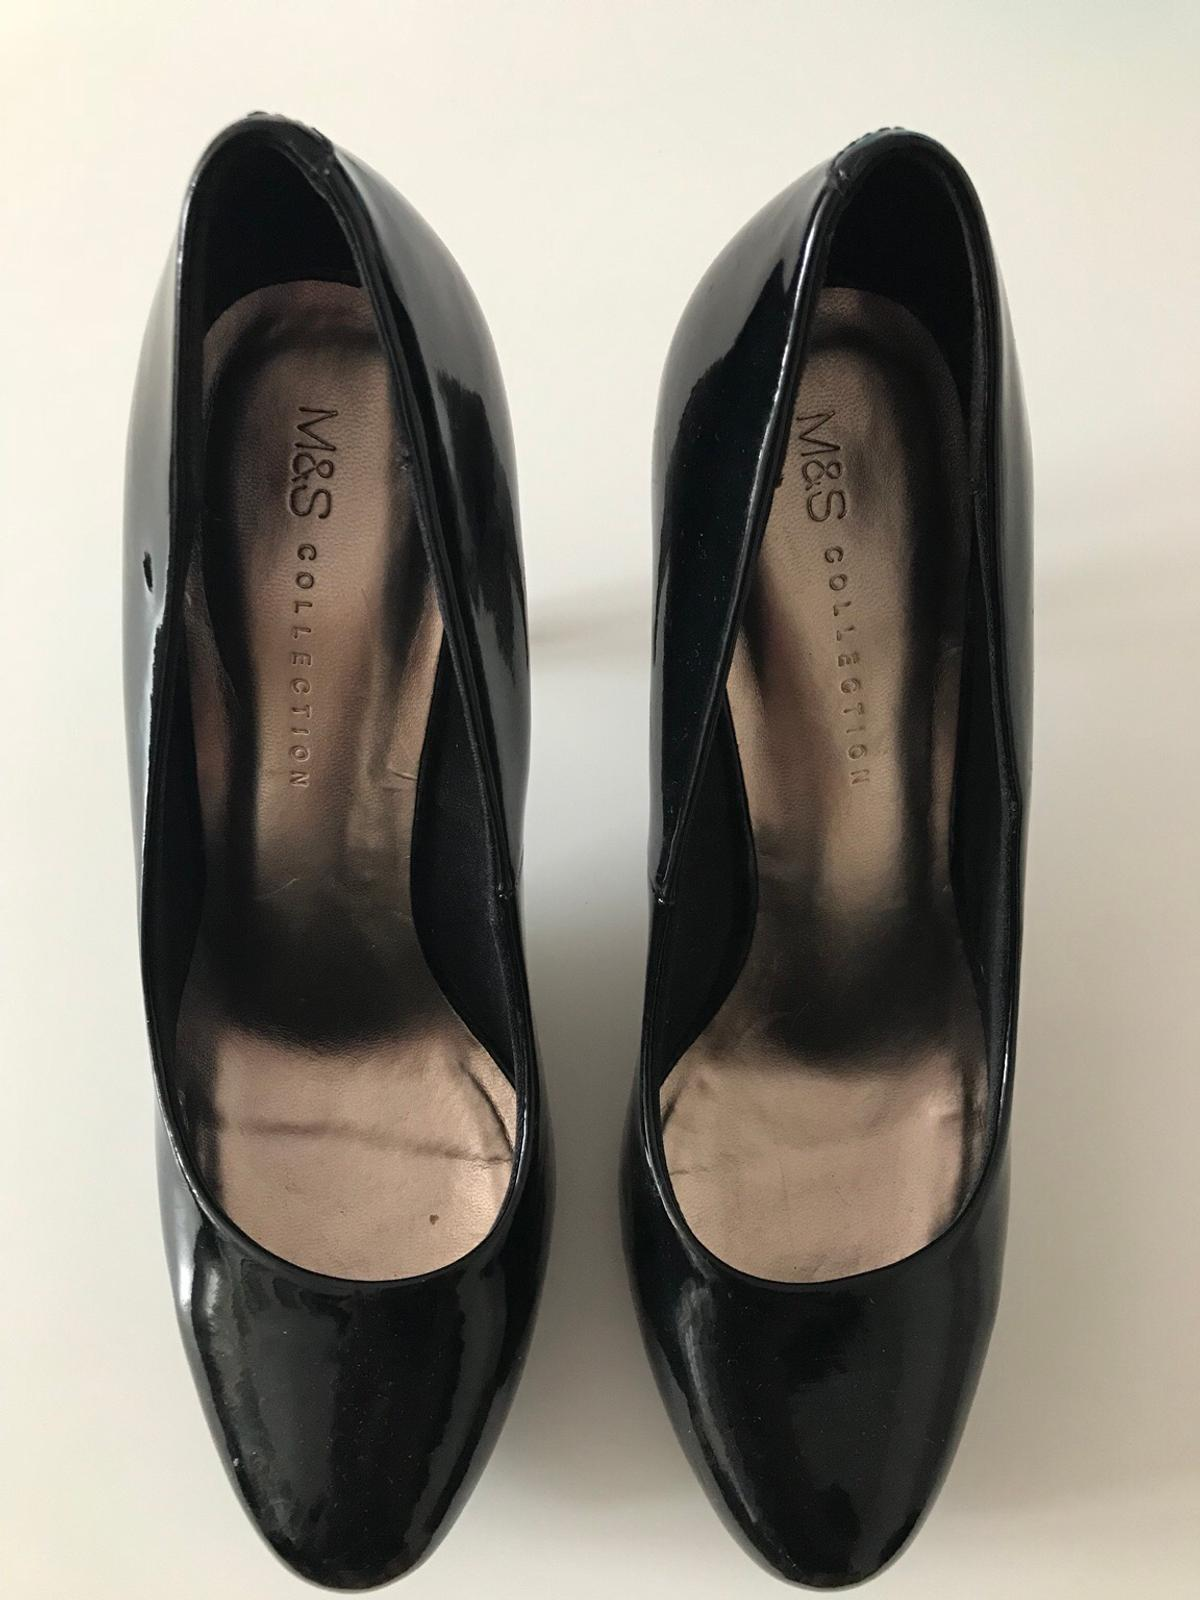 94928abb4 Marks and spencer shoes in SG2 Stevenage for £5.00 for sale - Shpock